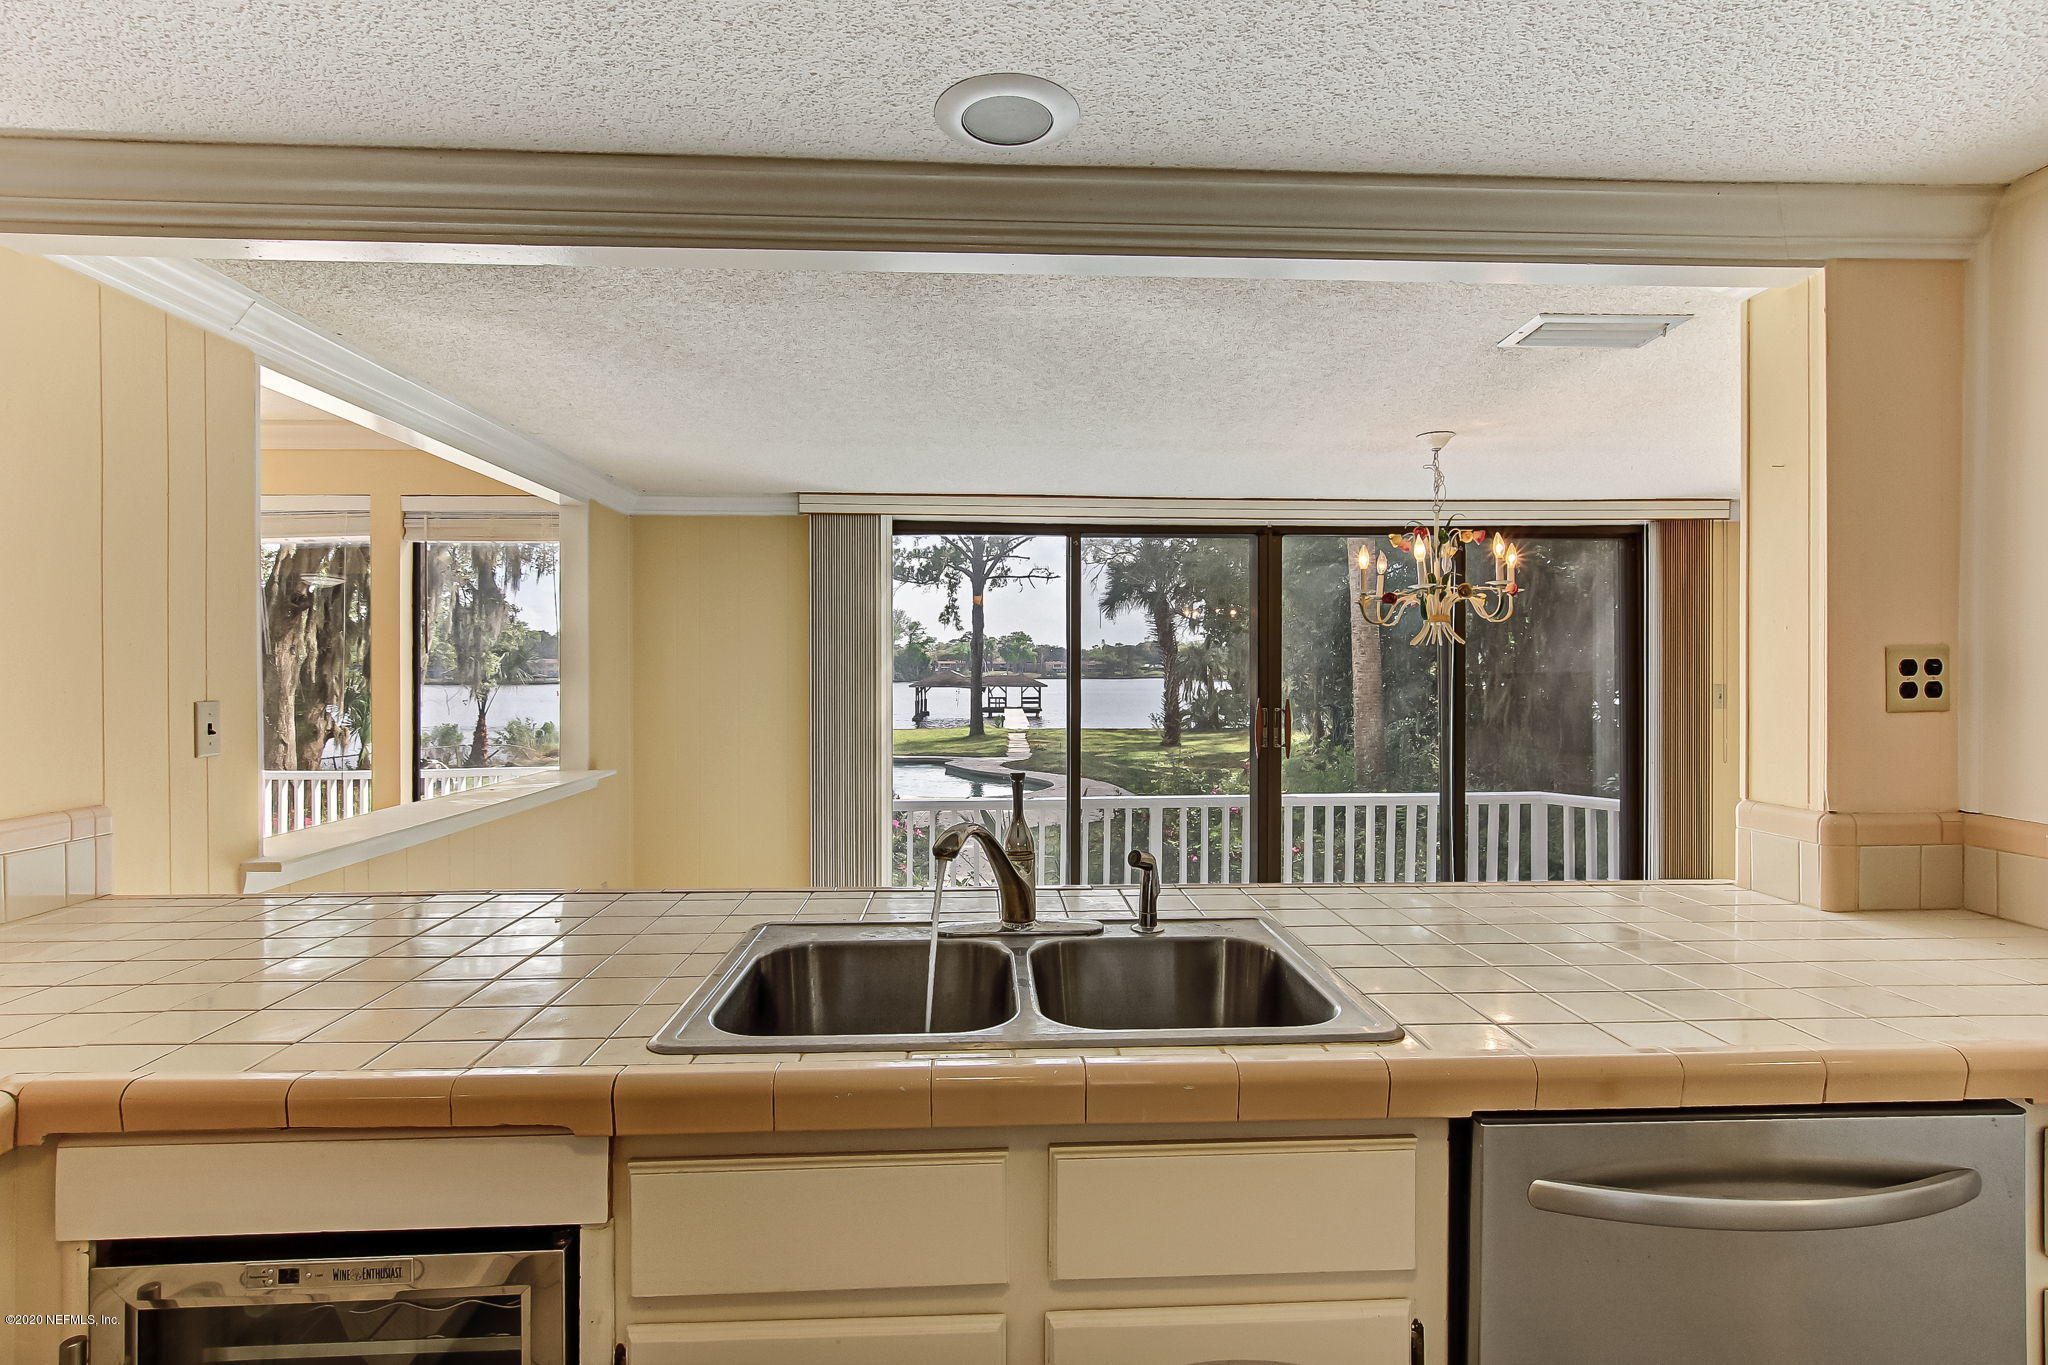 5334 CLIFTON, JACKSONVILLE, FLORIDA 32211, 4 Bedrooms Bedrooms, ,3 BathroomsBathrooms,Residential,For sale,CLIFTON,1046978